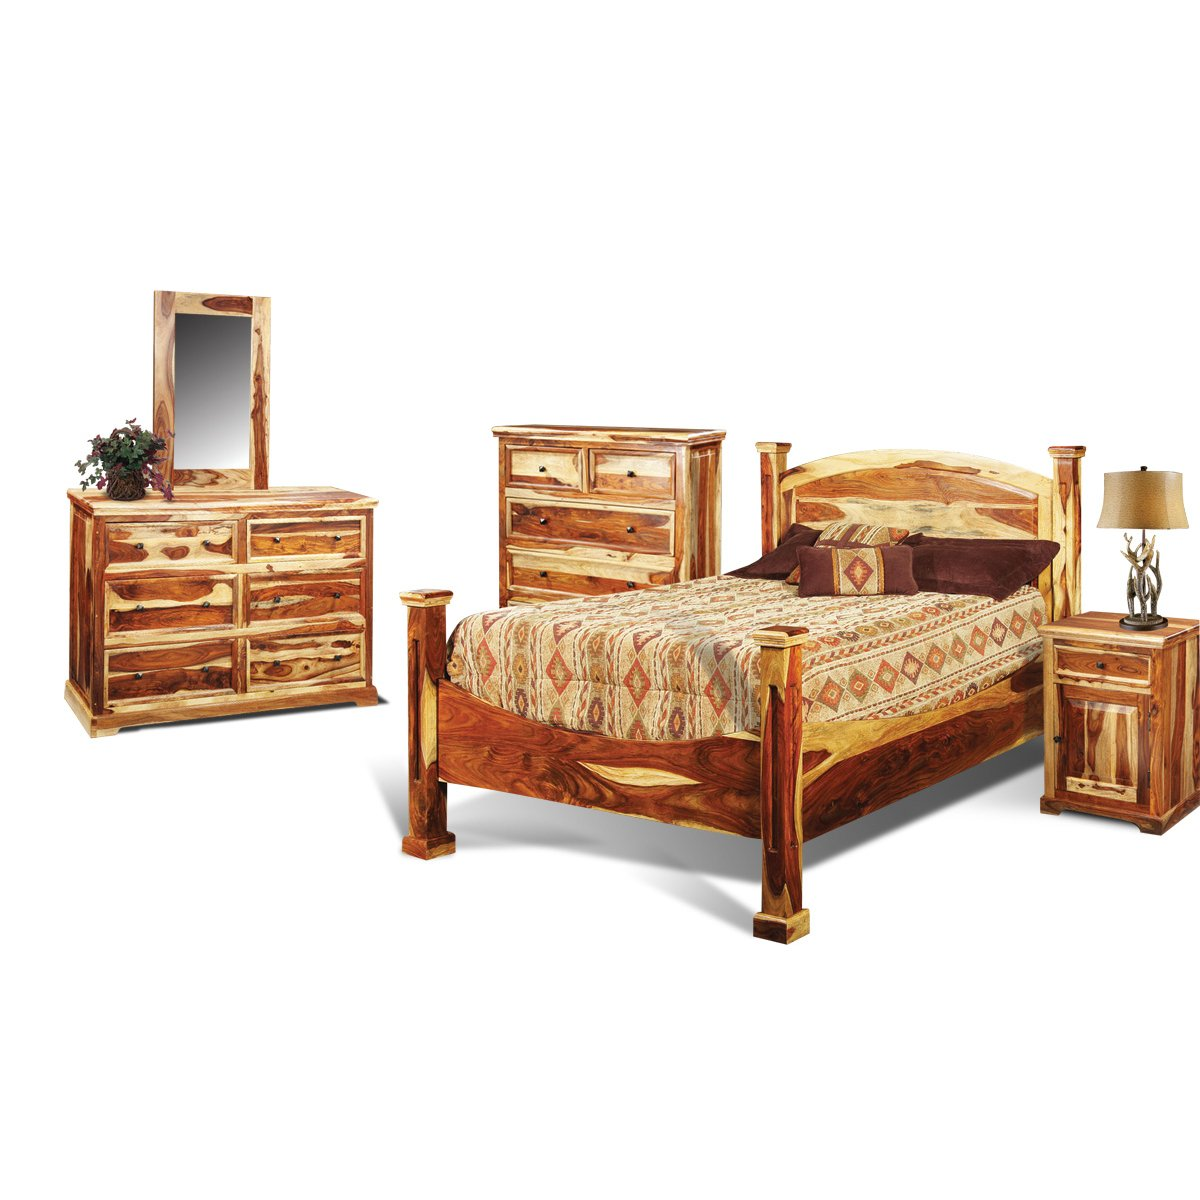 bedroom furniture sets rustic photo - 3